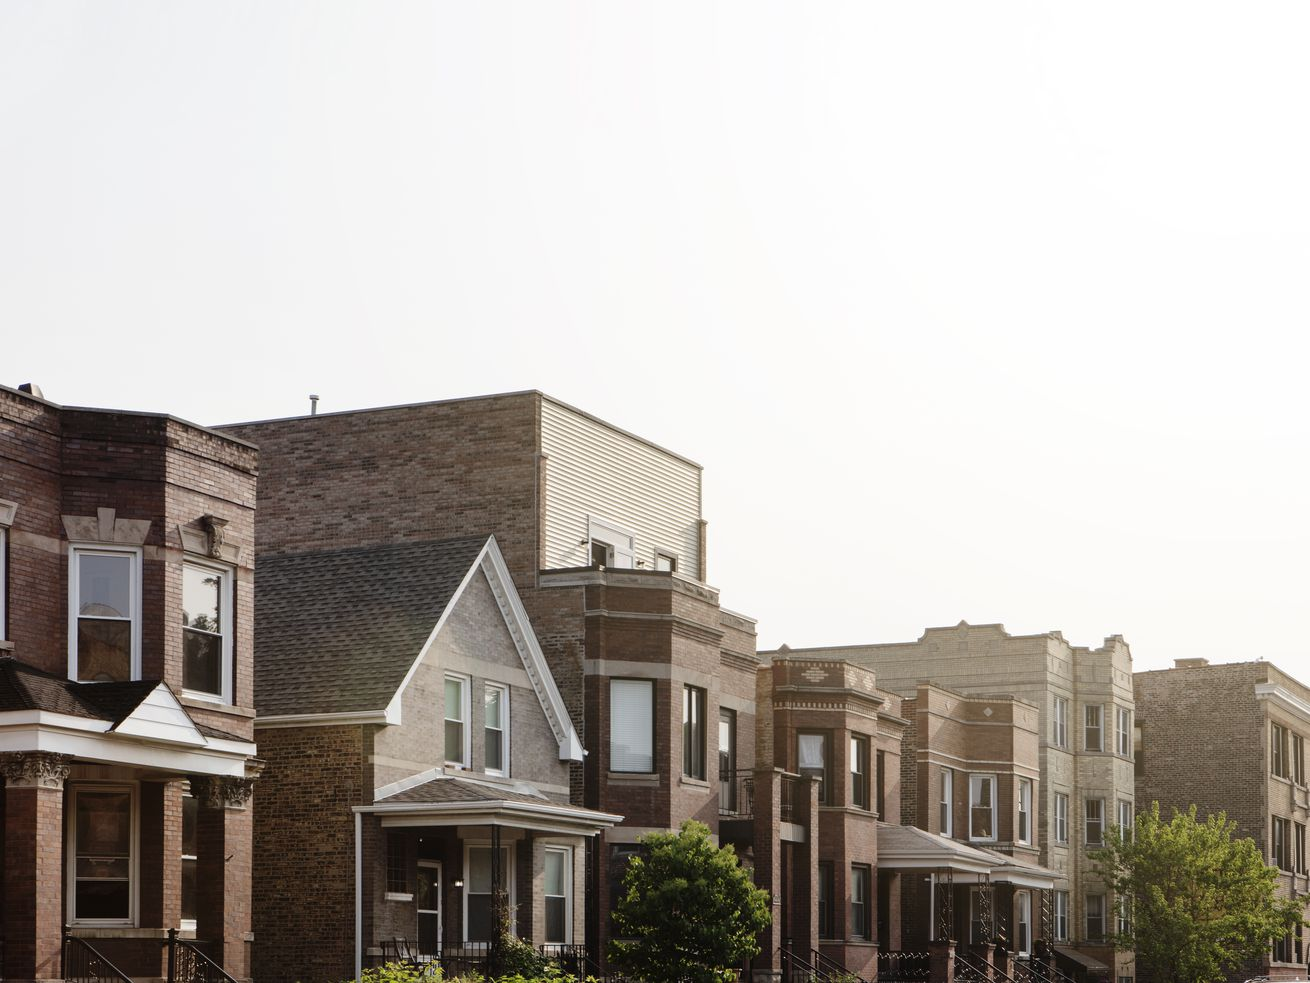 A view of brick two-story homes, workers cottages, and old Chicago craftsman houses with a white sky.